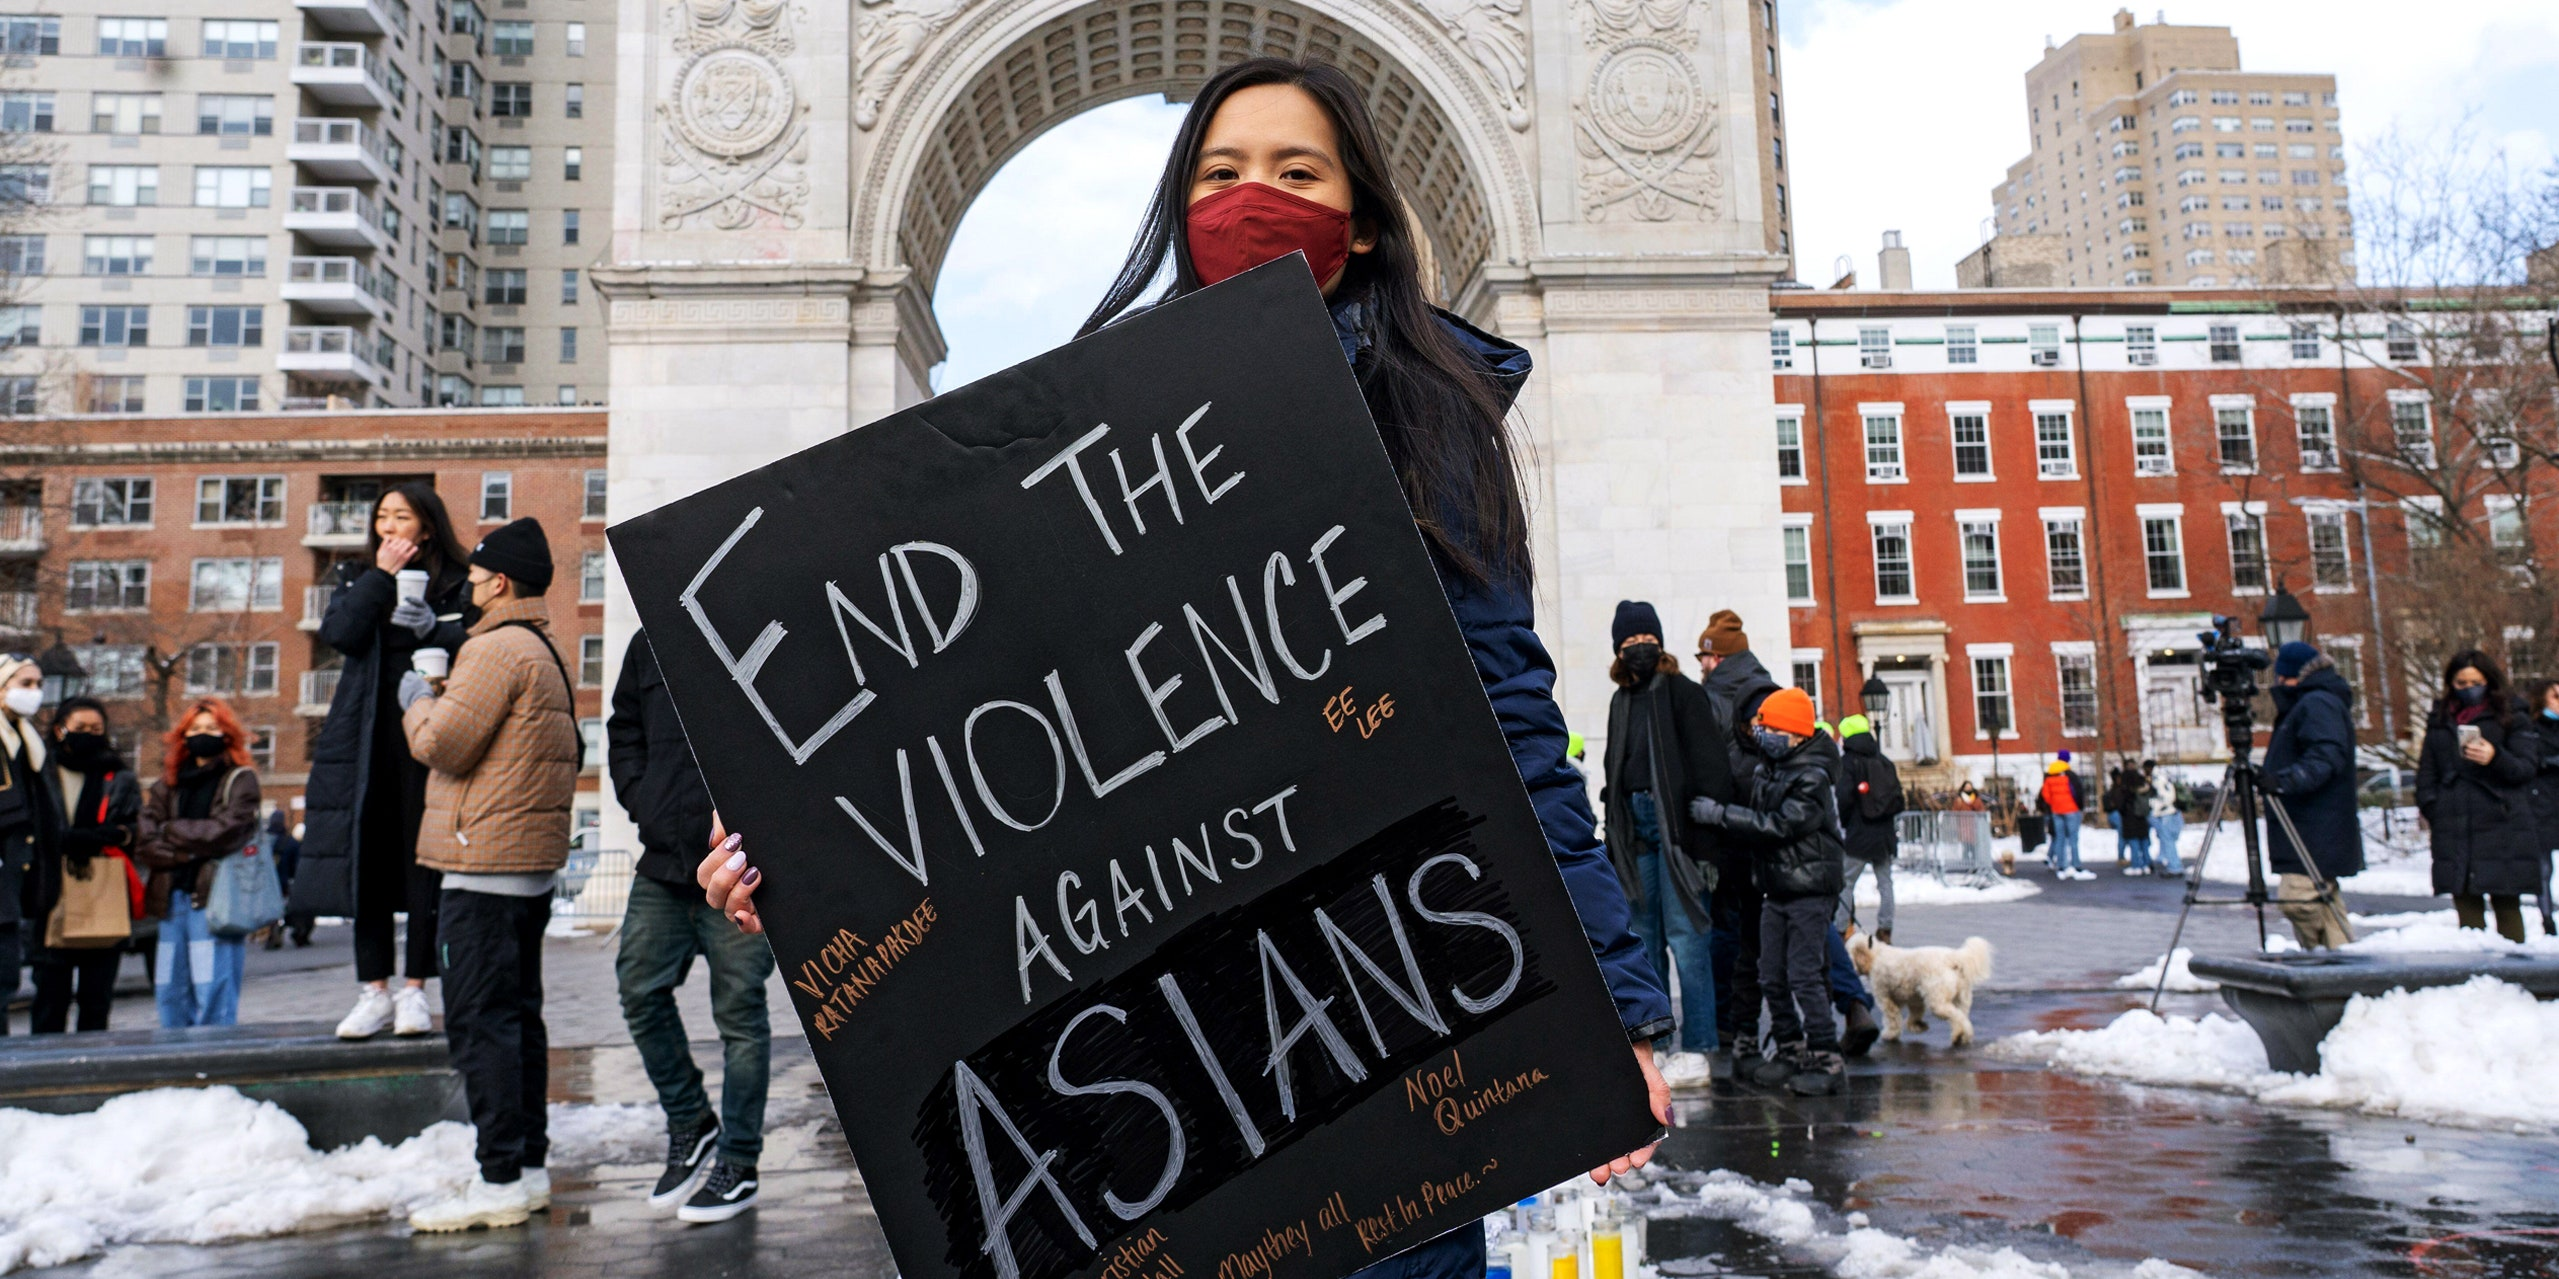 CCCU Statement in Response to Anti-Asian Violence